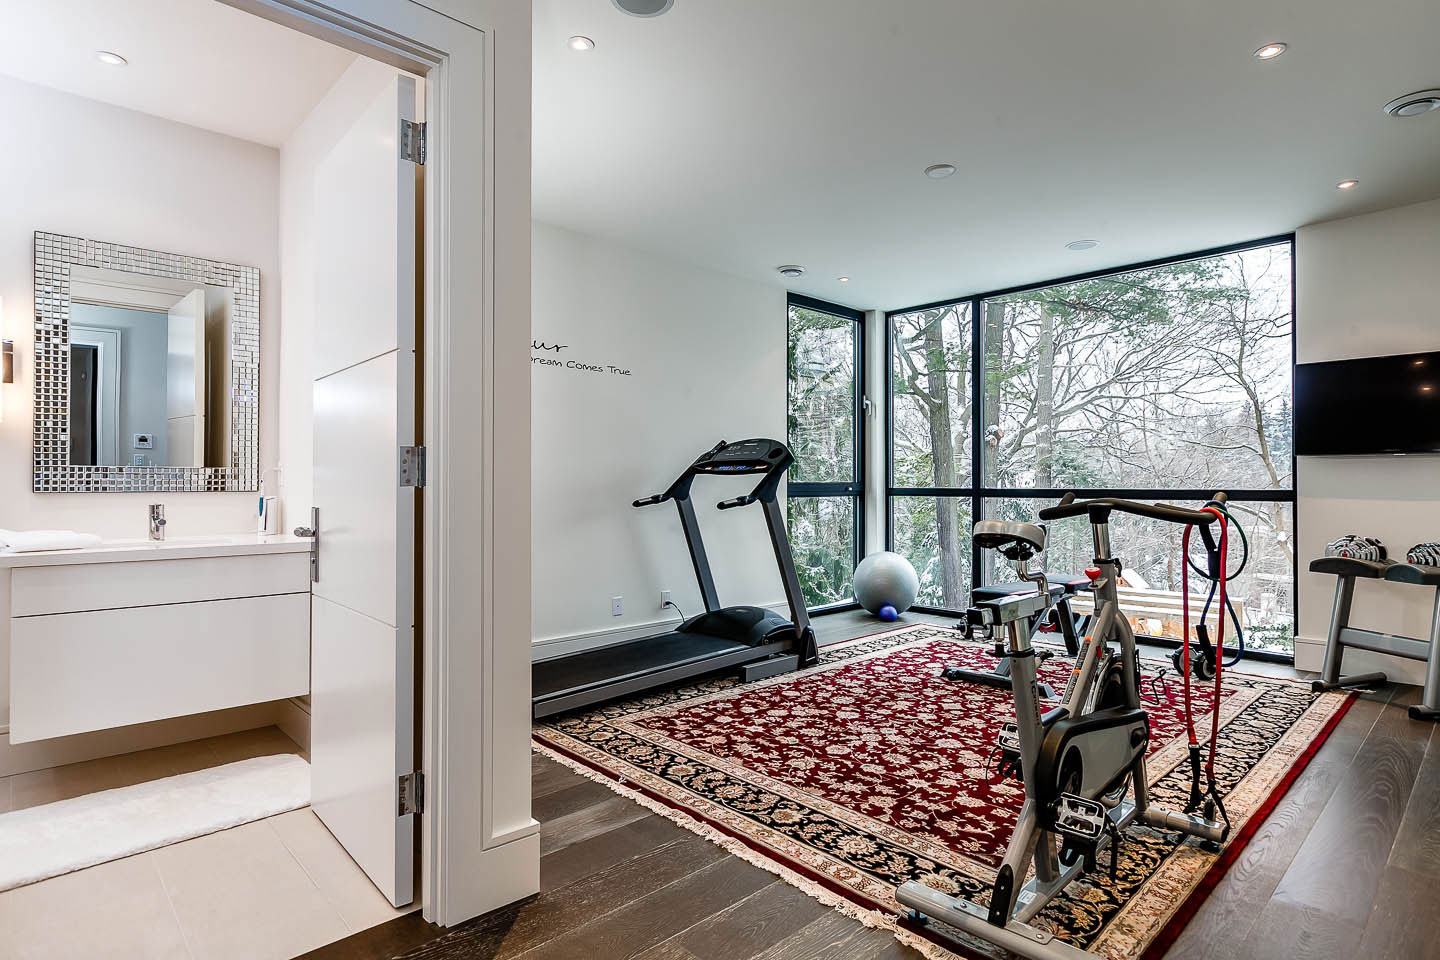 Gym, Contemporary House in Toronto, Canada